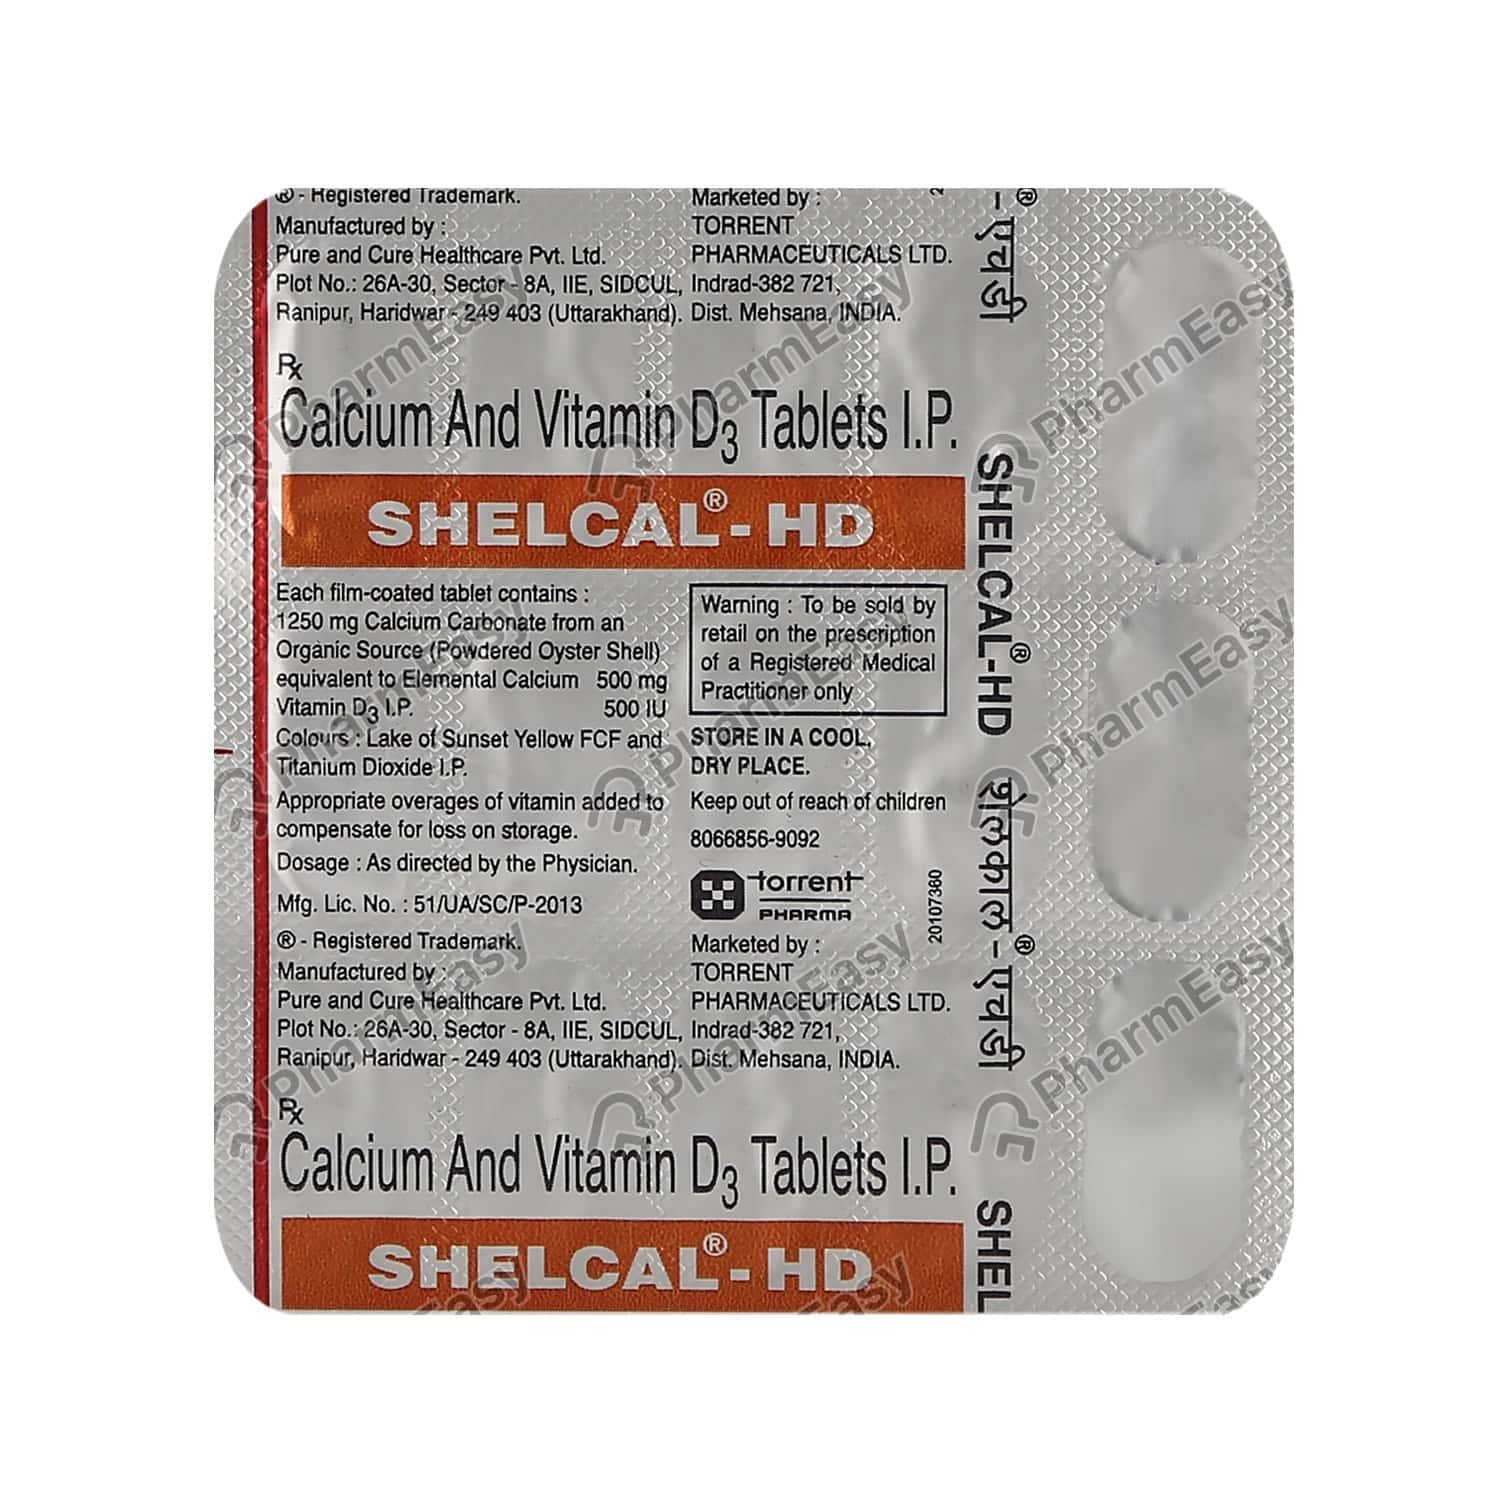 Shelcal Hd Strip Of 15 Tablets